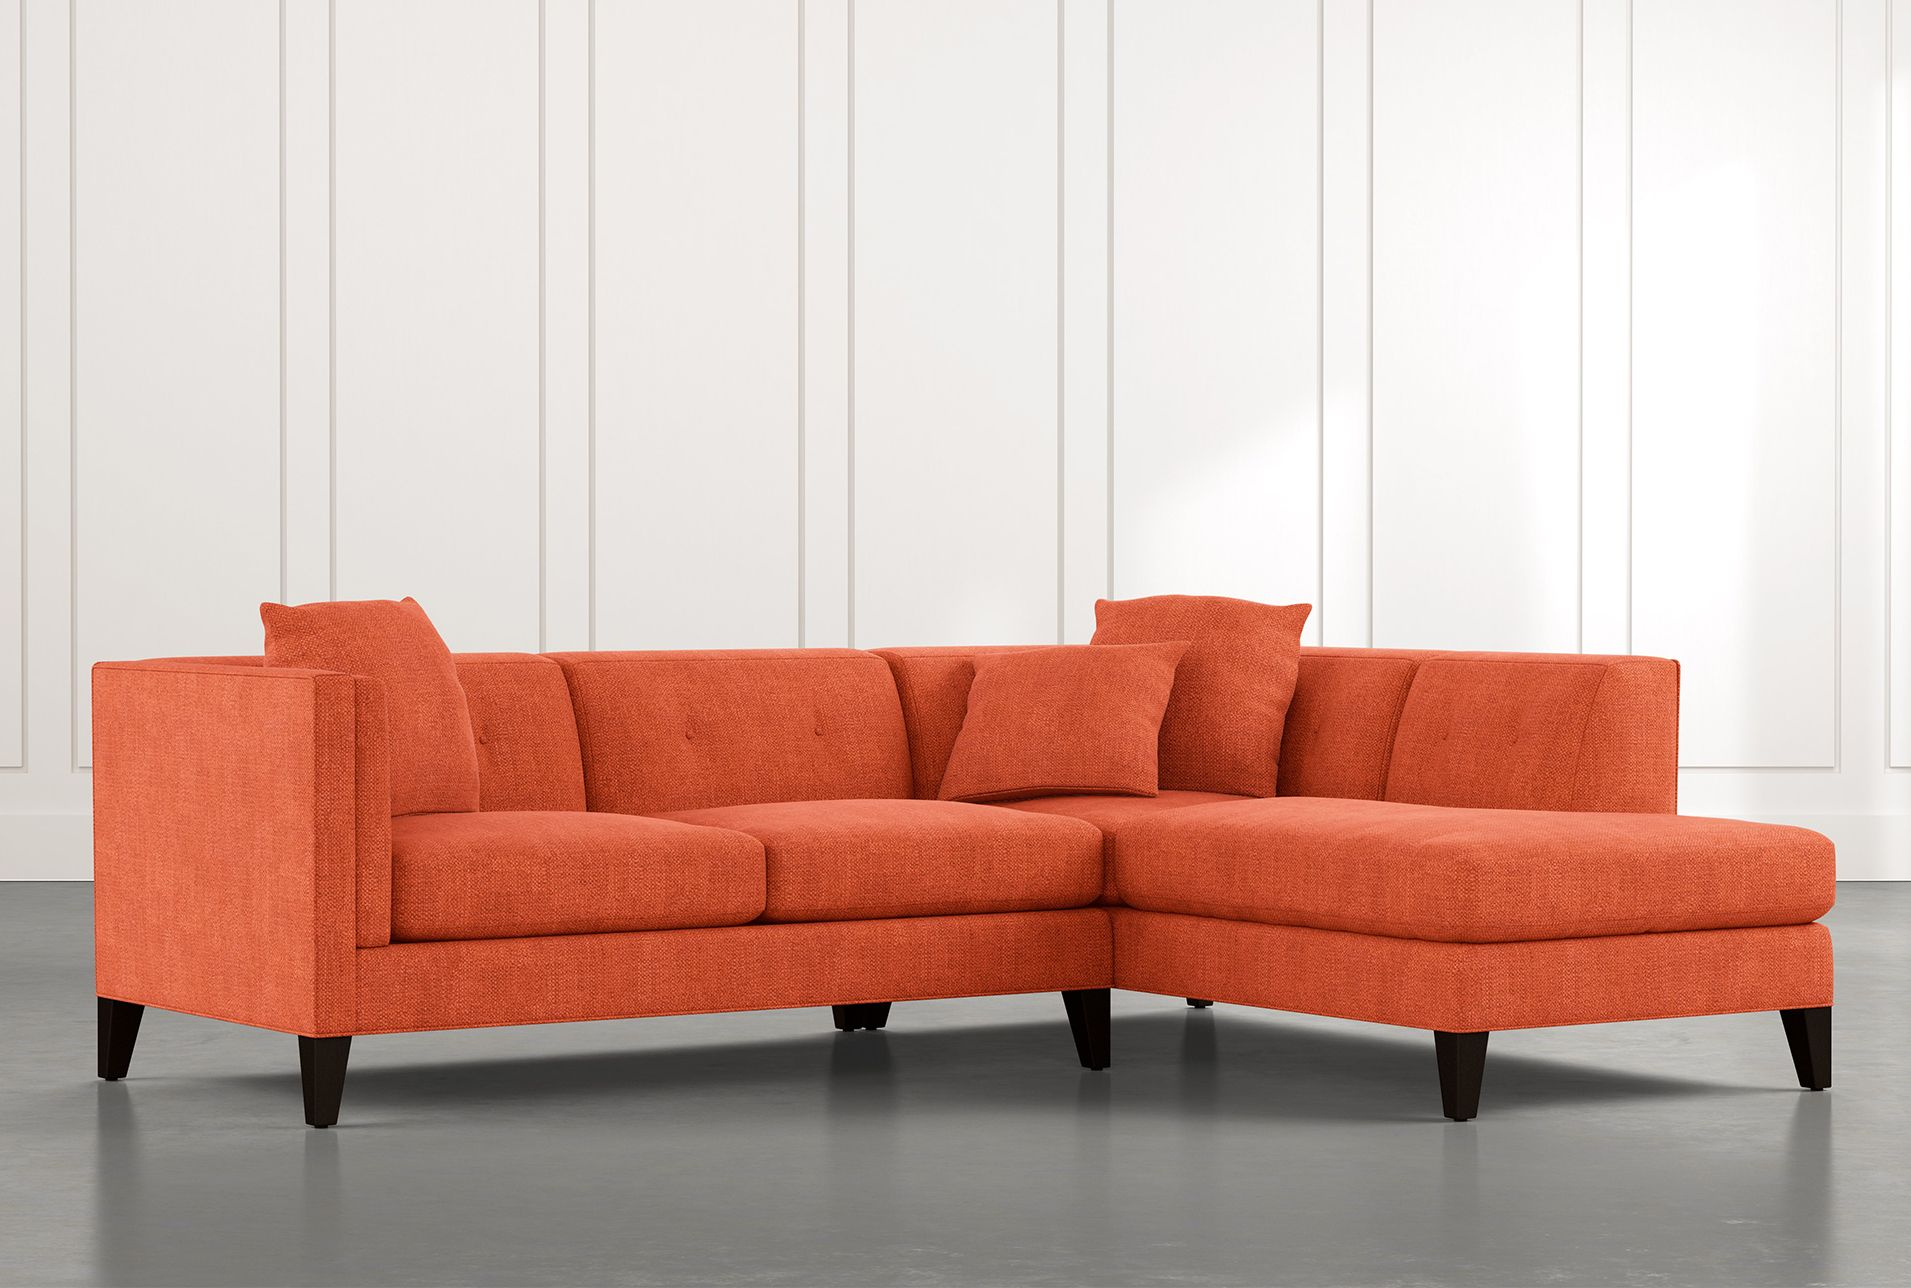 Avery Ii Orange 2 Piece Sectional Sofa With Right Arm Within Avery 2 Piece Sectionals With Raf Armless Chaise (View 1 of 15)